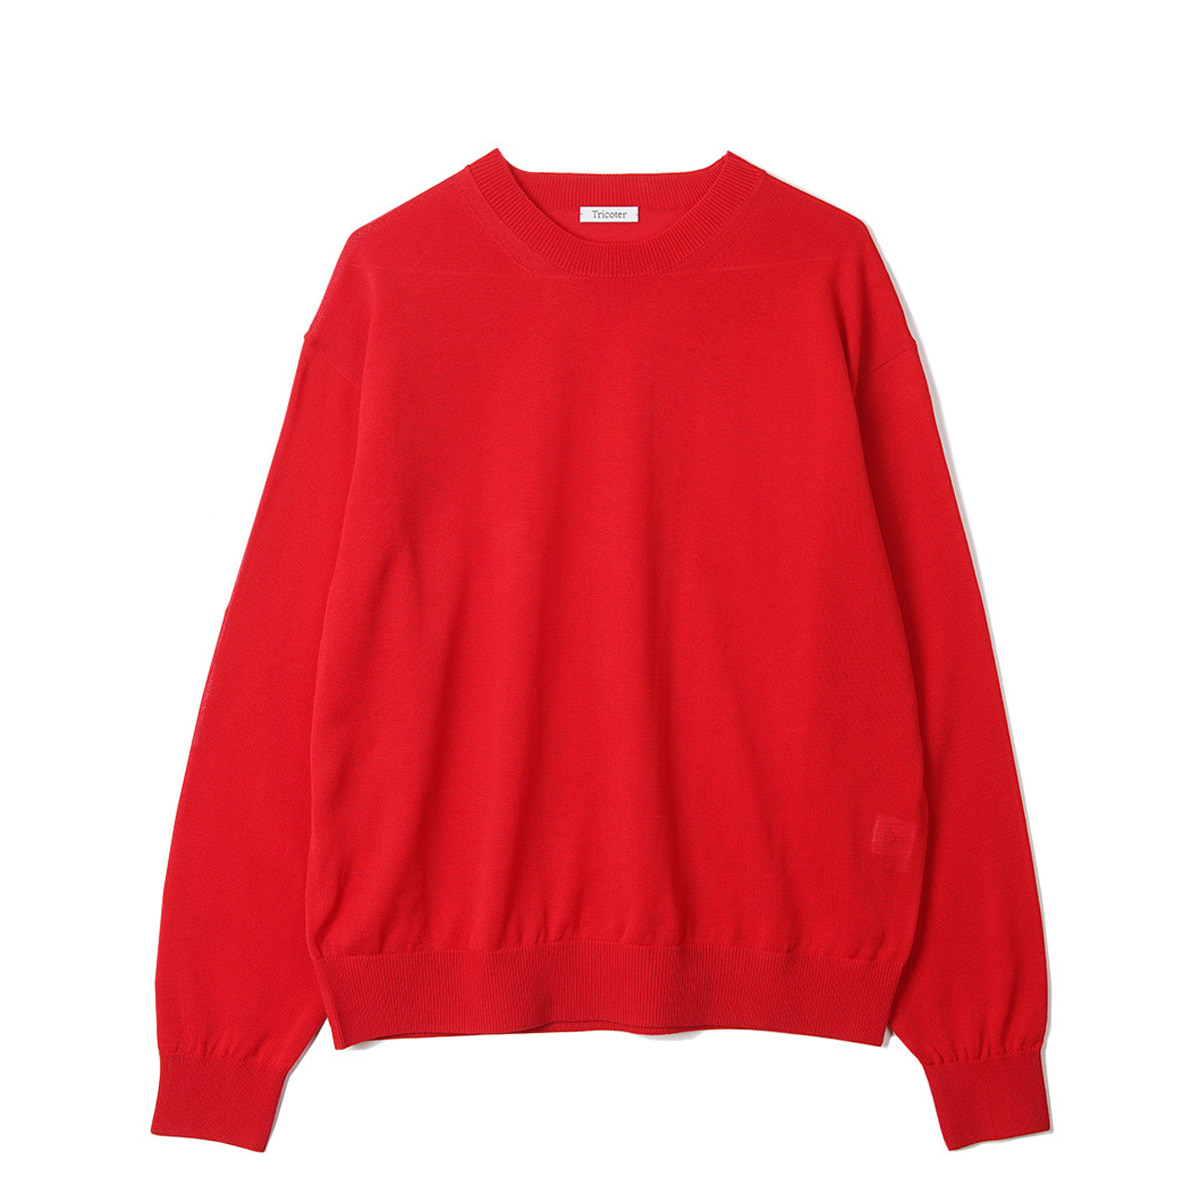 [TRICOTER] SUMMER YARN CREW NECK PULLOVER 'DEEP RED'